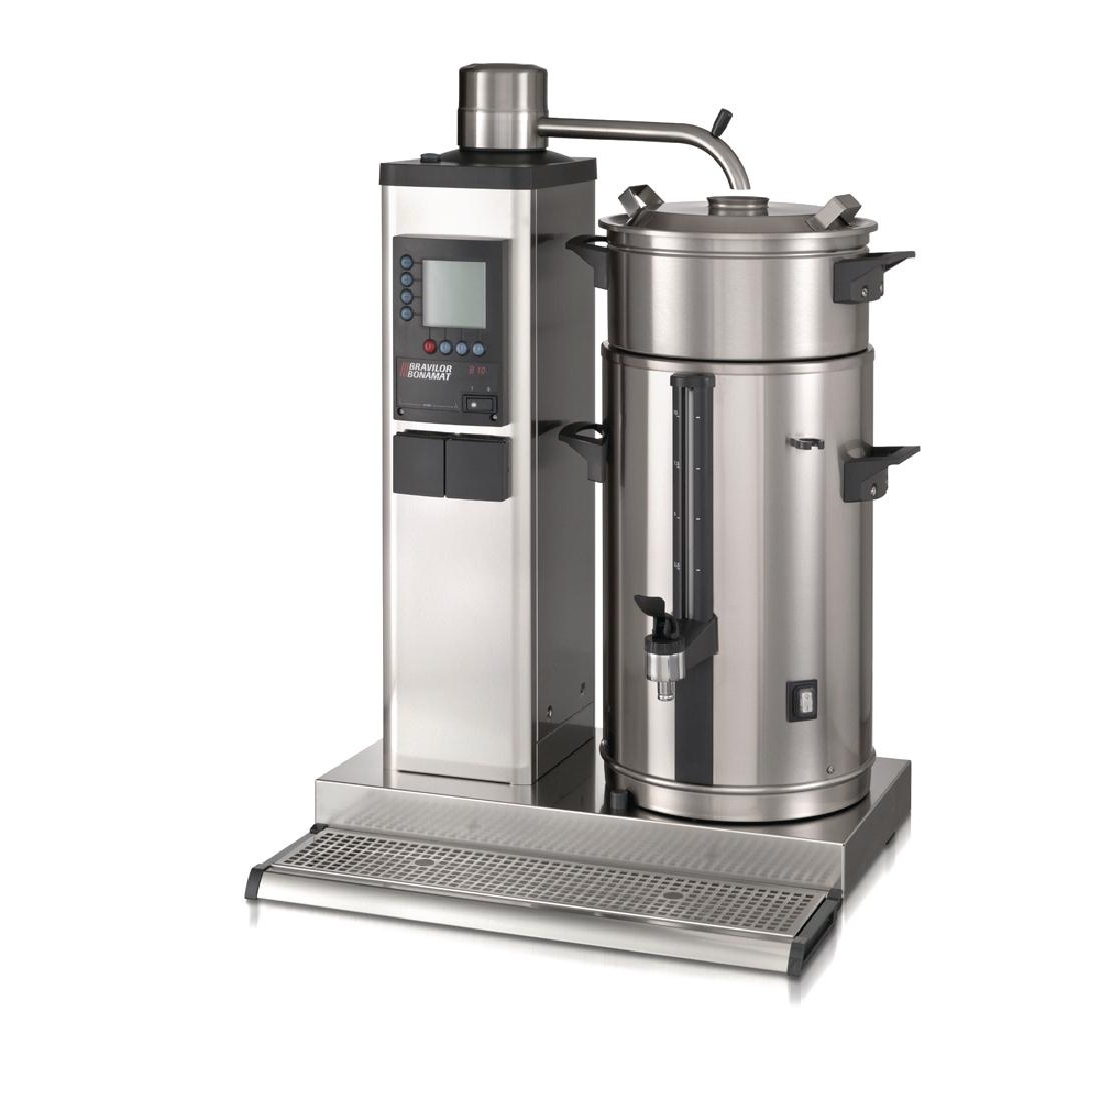 Bravilor B10 R Bulk Coffee Brewer with 10Ltr Coffee Urn Single Phase